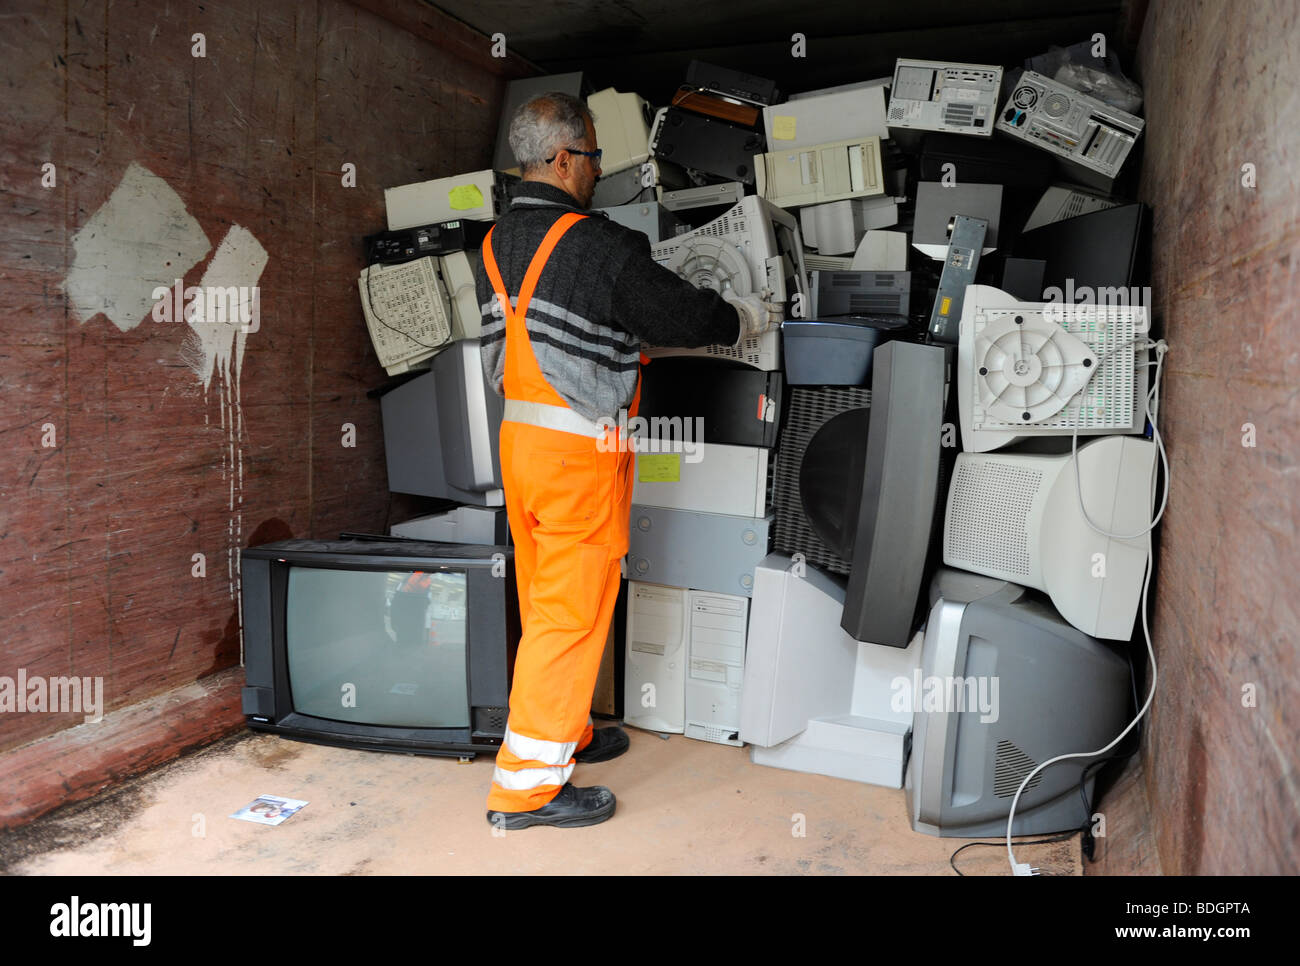 Electronic Scrap Old Computer Monitors Stock Photos Electronics Recycling Pictures Zimbio Germany Hamburg Collection And Of At Public Recycle Place Image